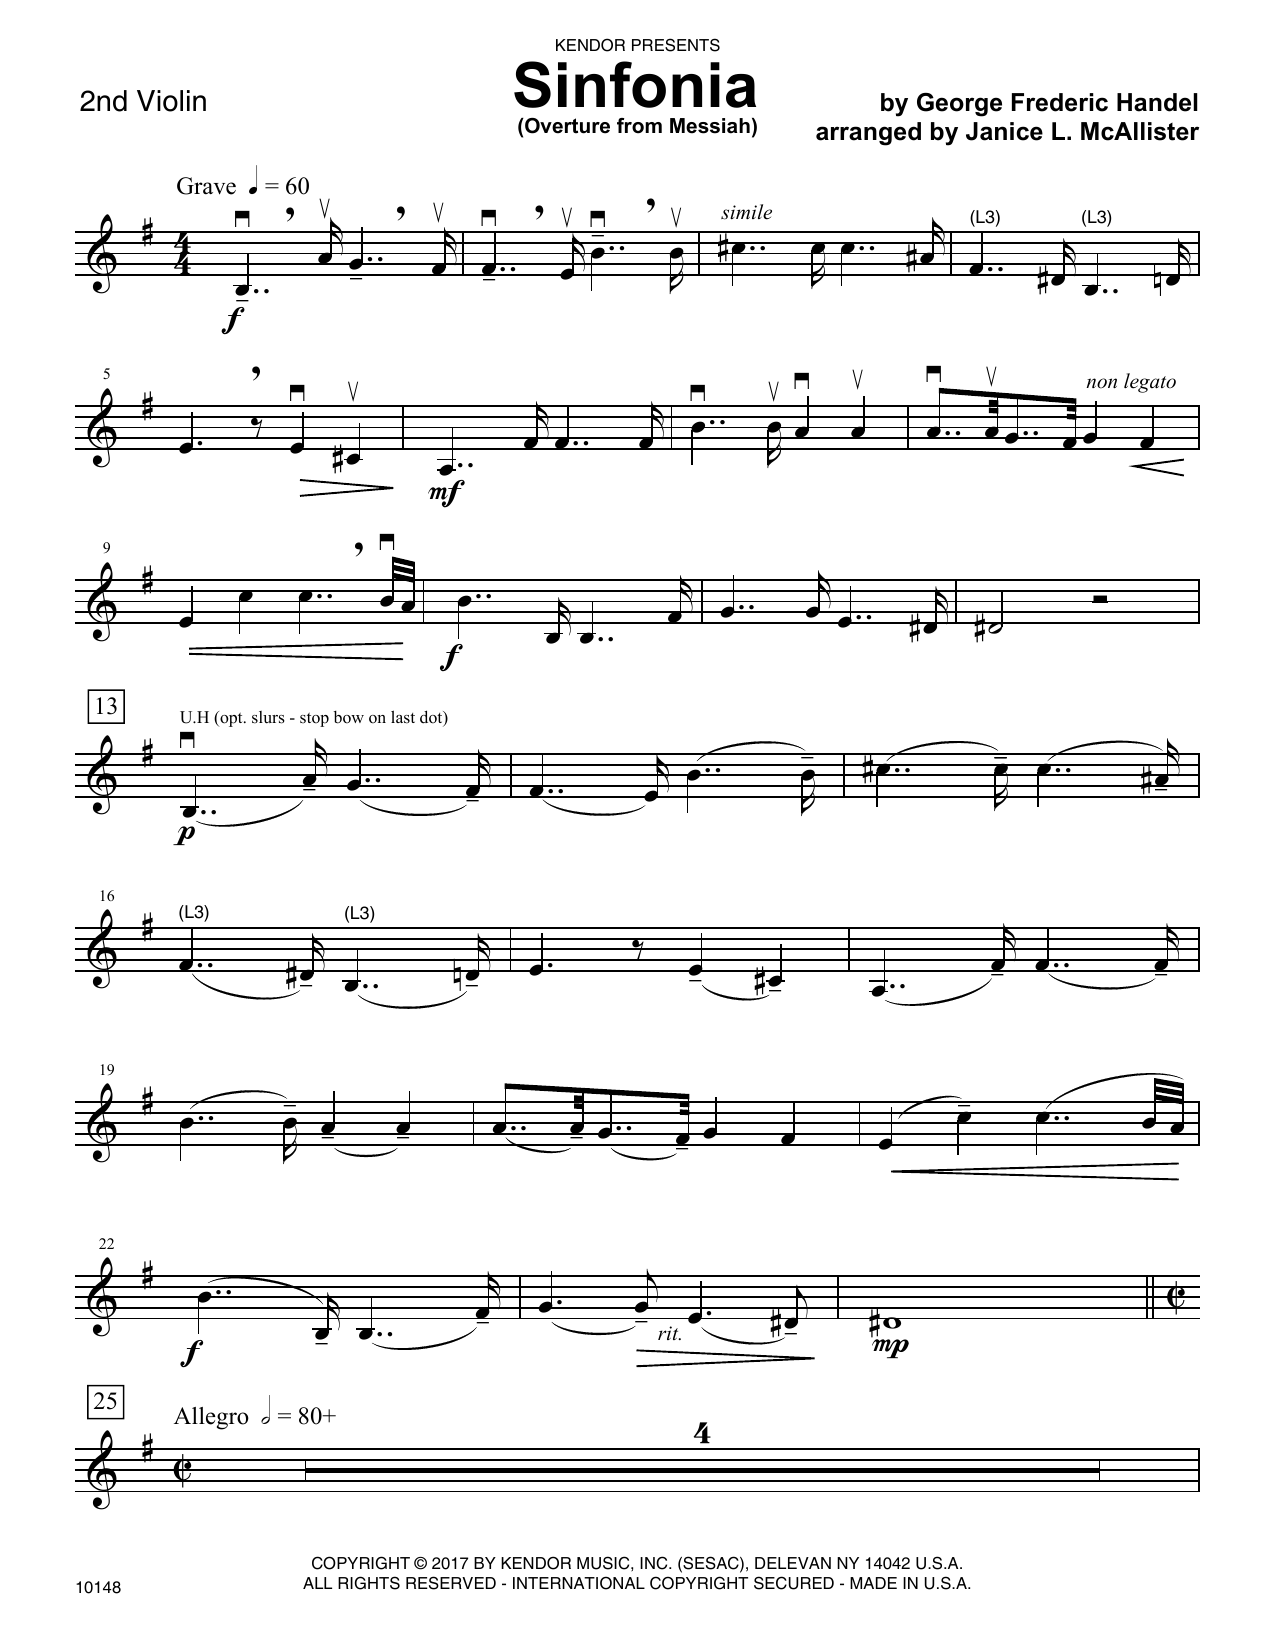 George Frideric Handel Sinfonia (Overture from Messiah) - 2nd Violin sheet music notes and chords. Download Printable PDF.